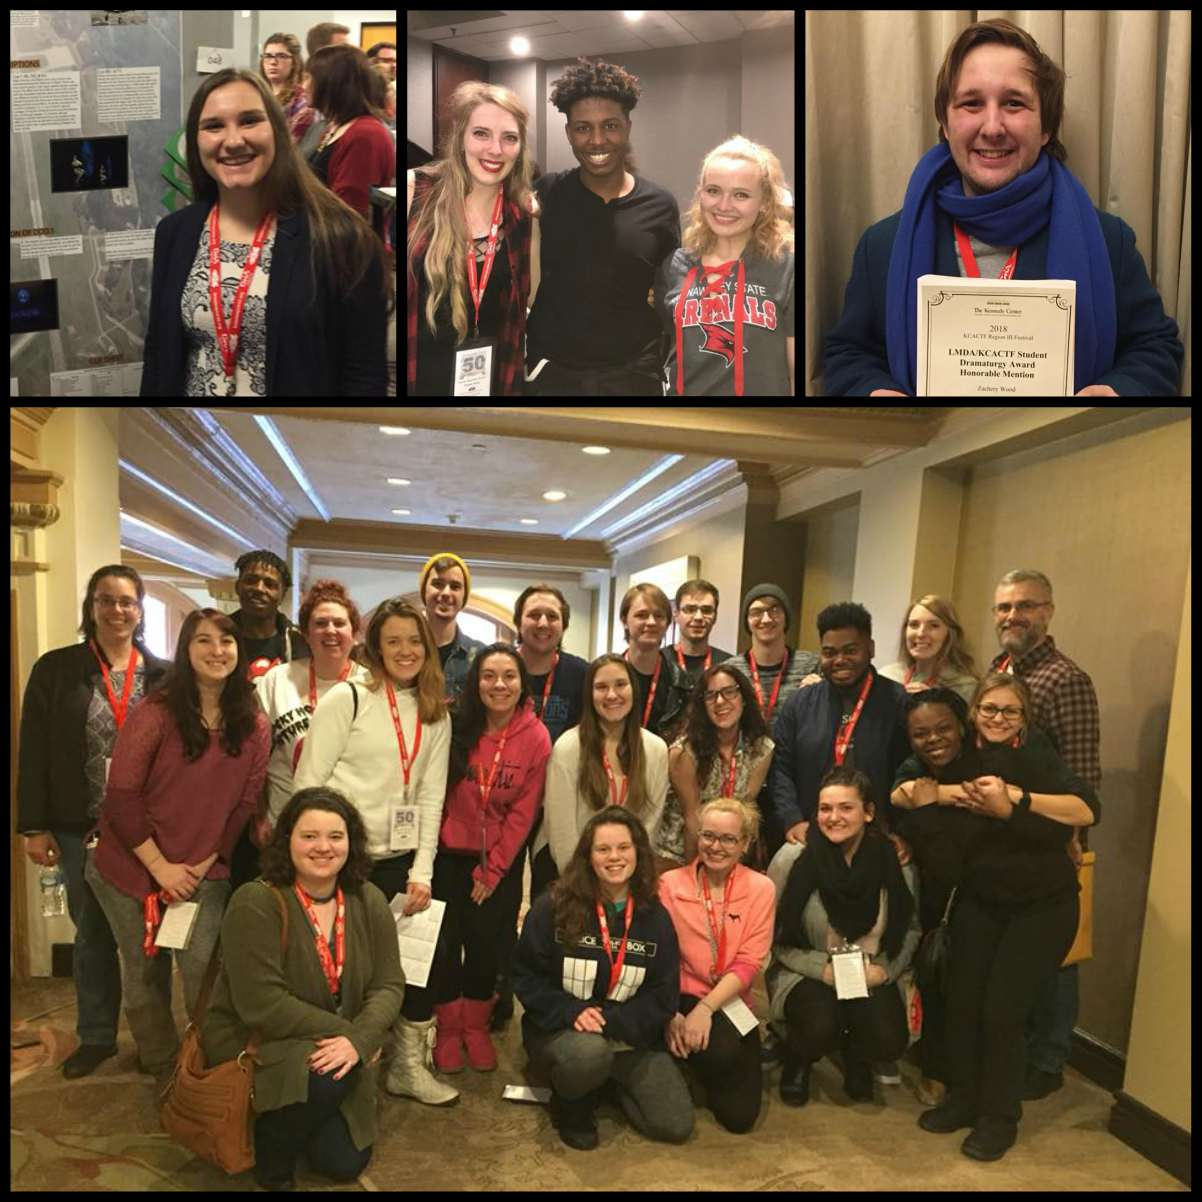 Congratulations to the 20 SVSU students and alumni who were among the 1,400 students participating and competing in theatre- and music-based events during the Kennedy Center American College Theatre Festival for Region III